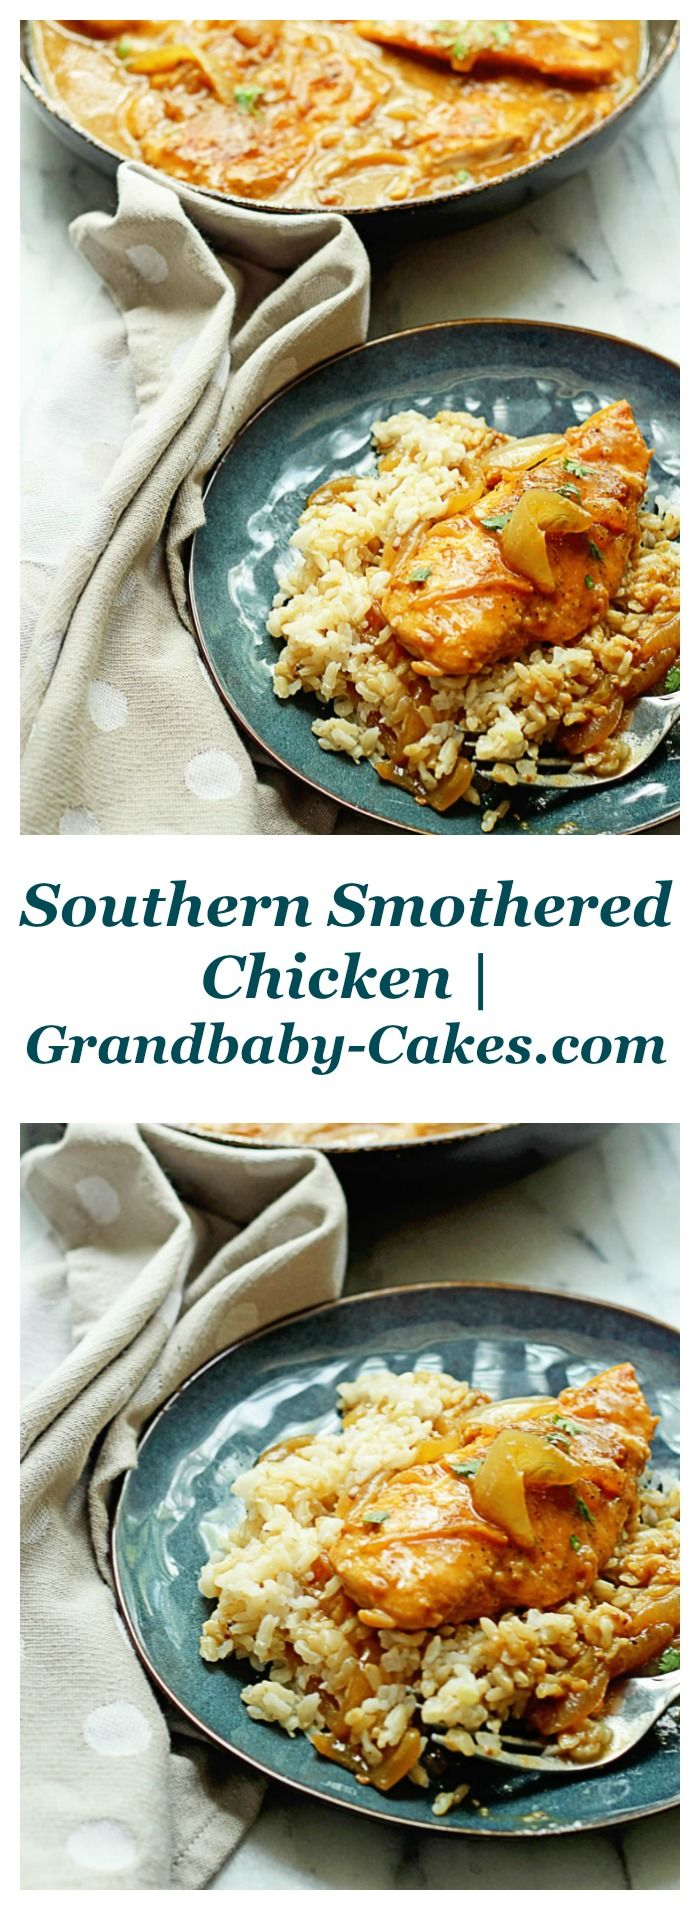 Southern Smothered Chicken | Grandbaby-Cakes.com